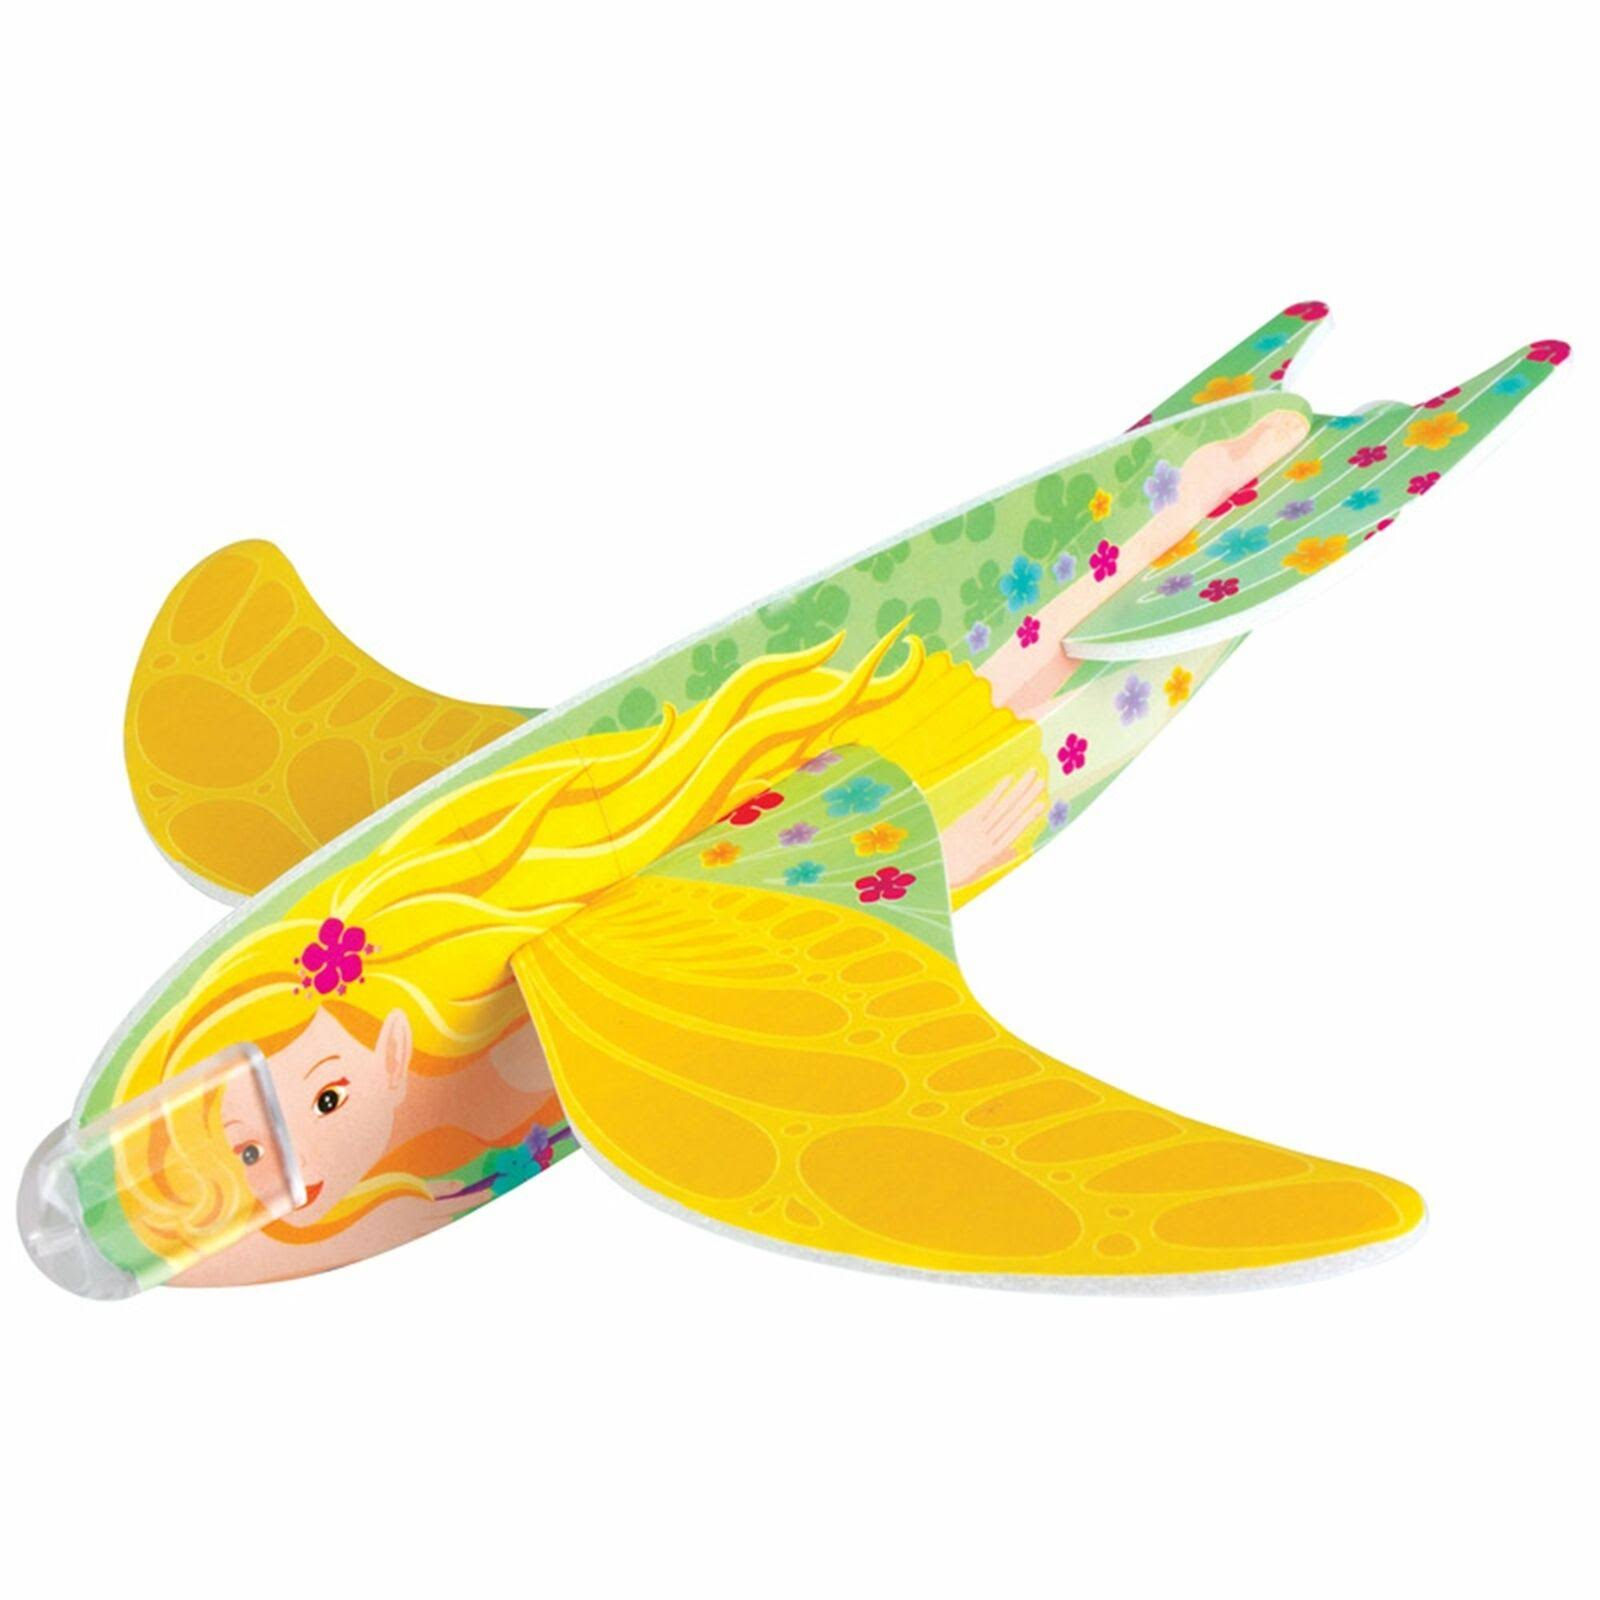 Fairy Poly Aeroplane Glider Toy